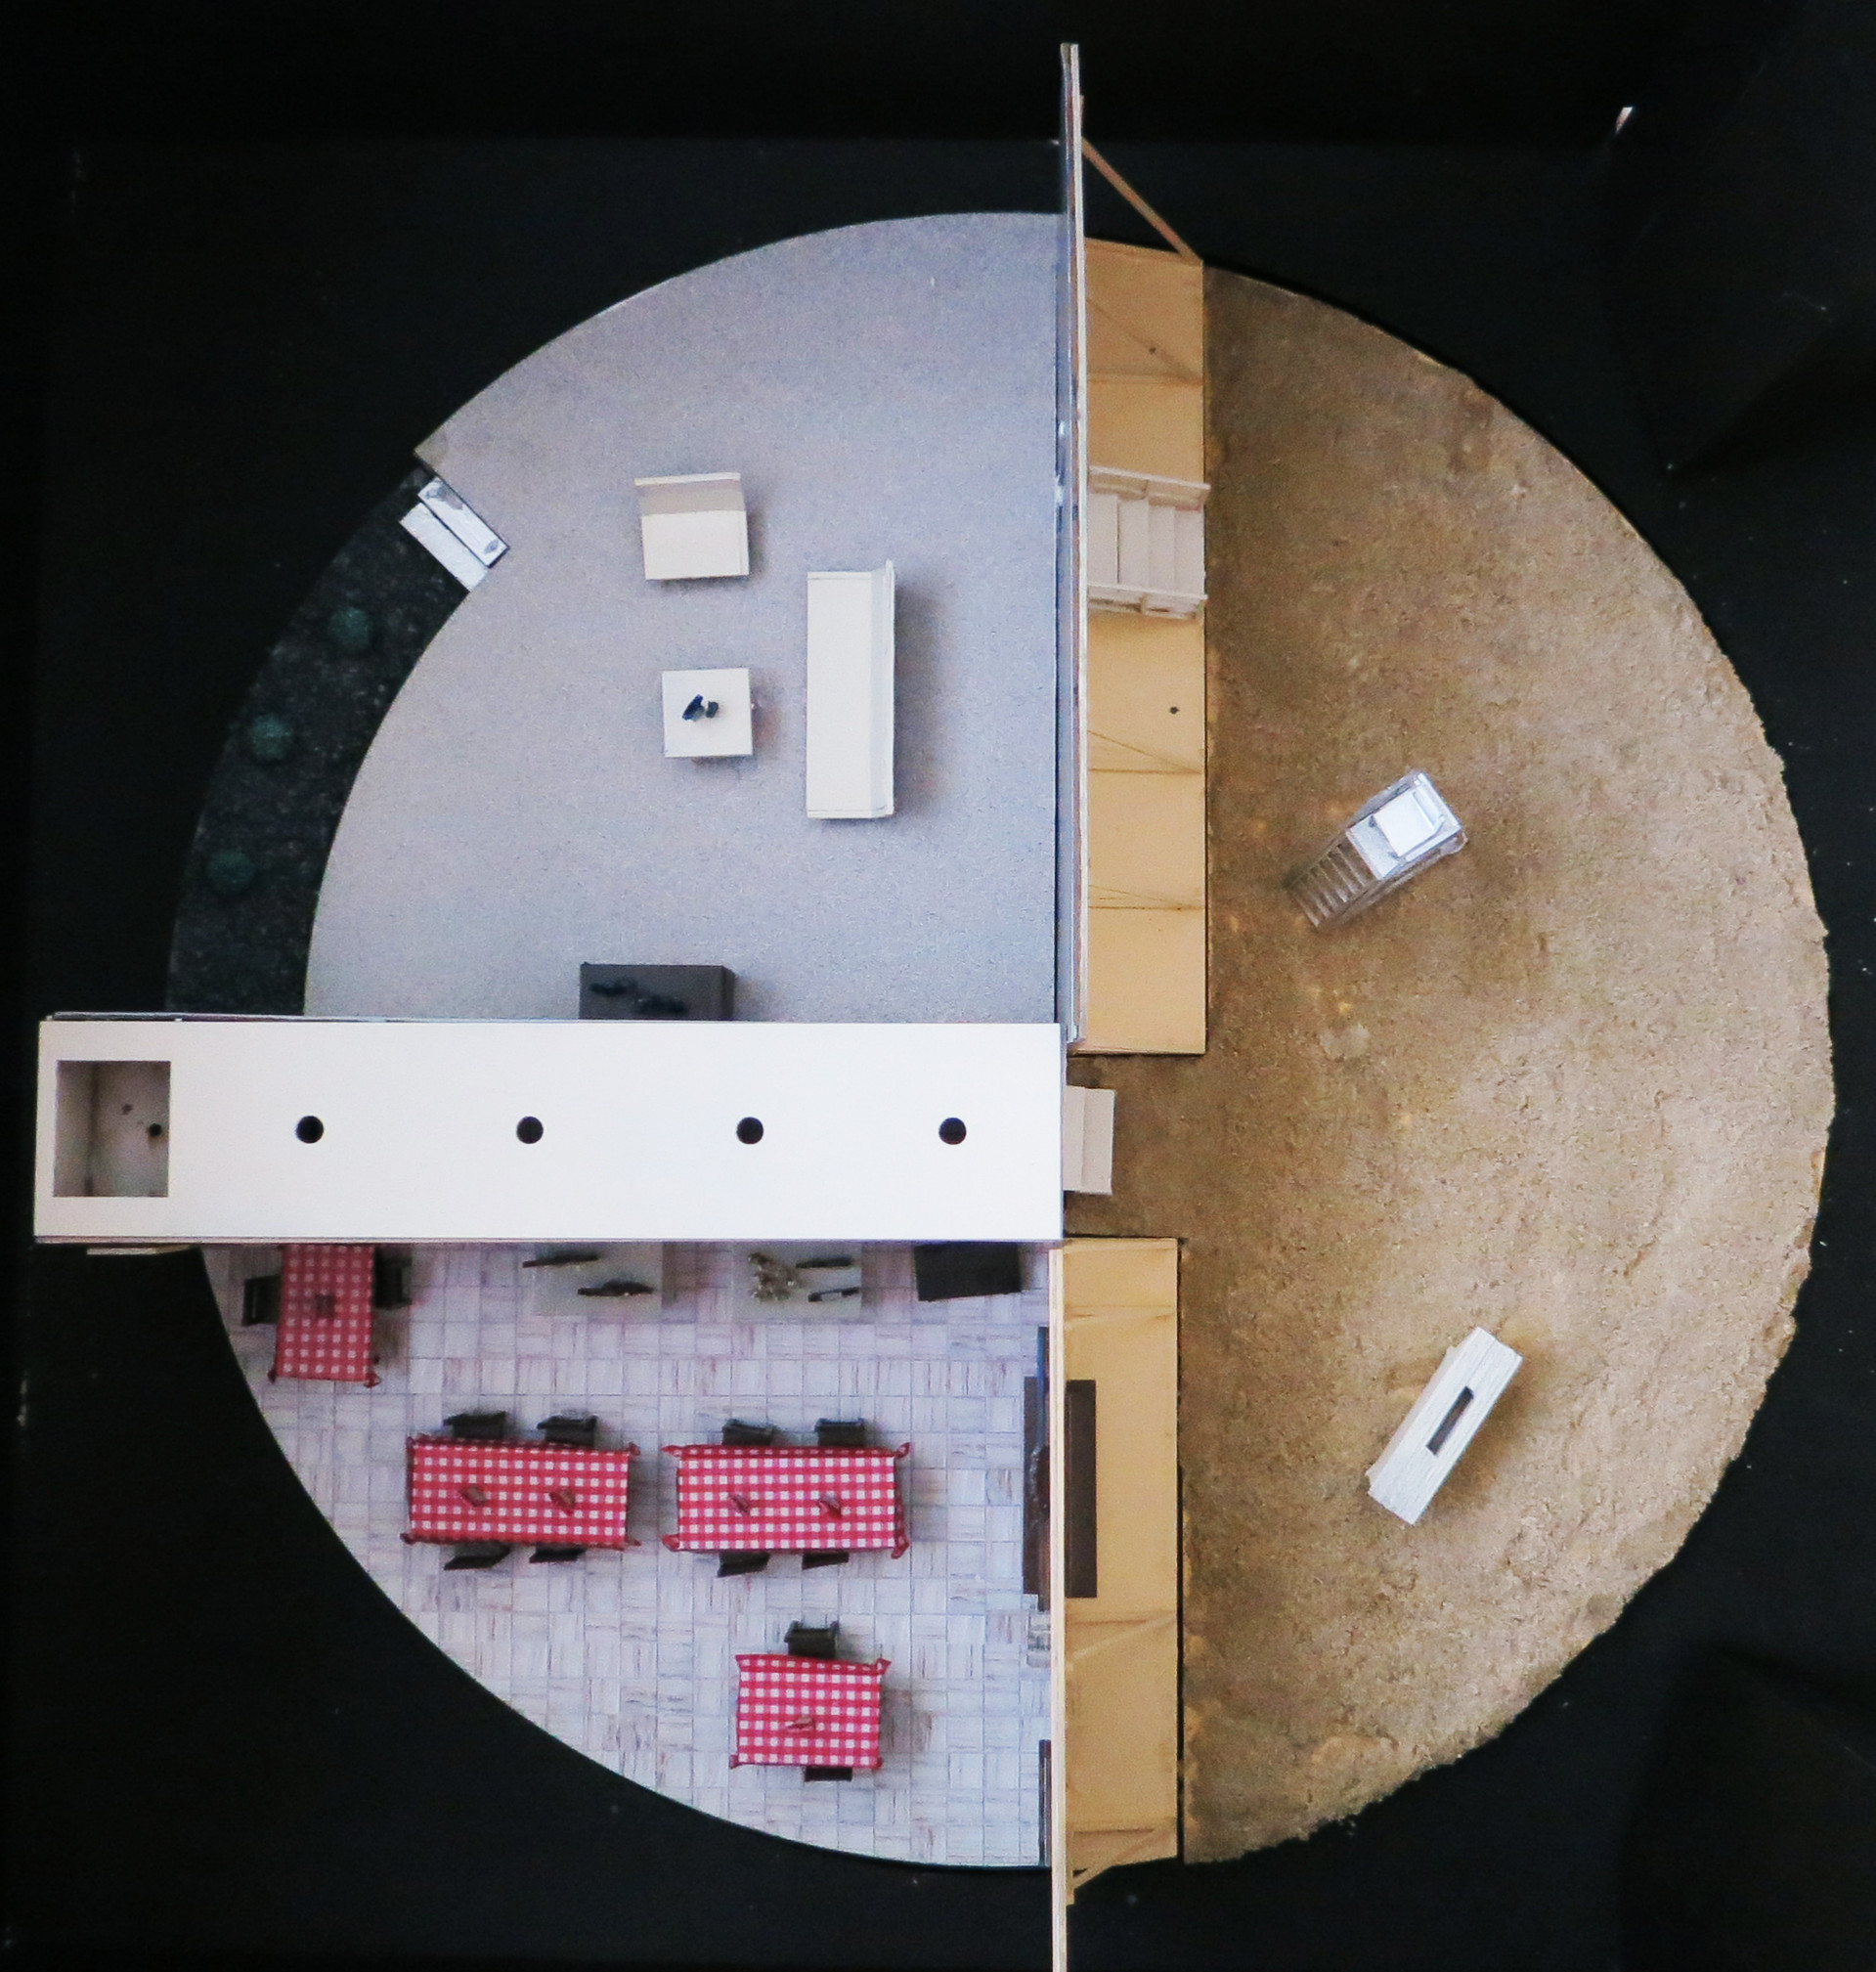 Stage Design seen from the top